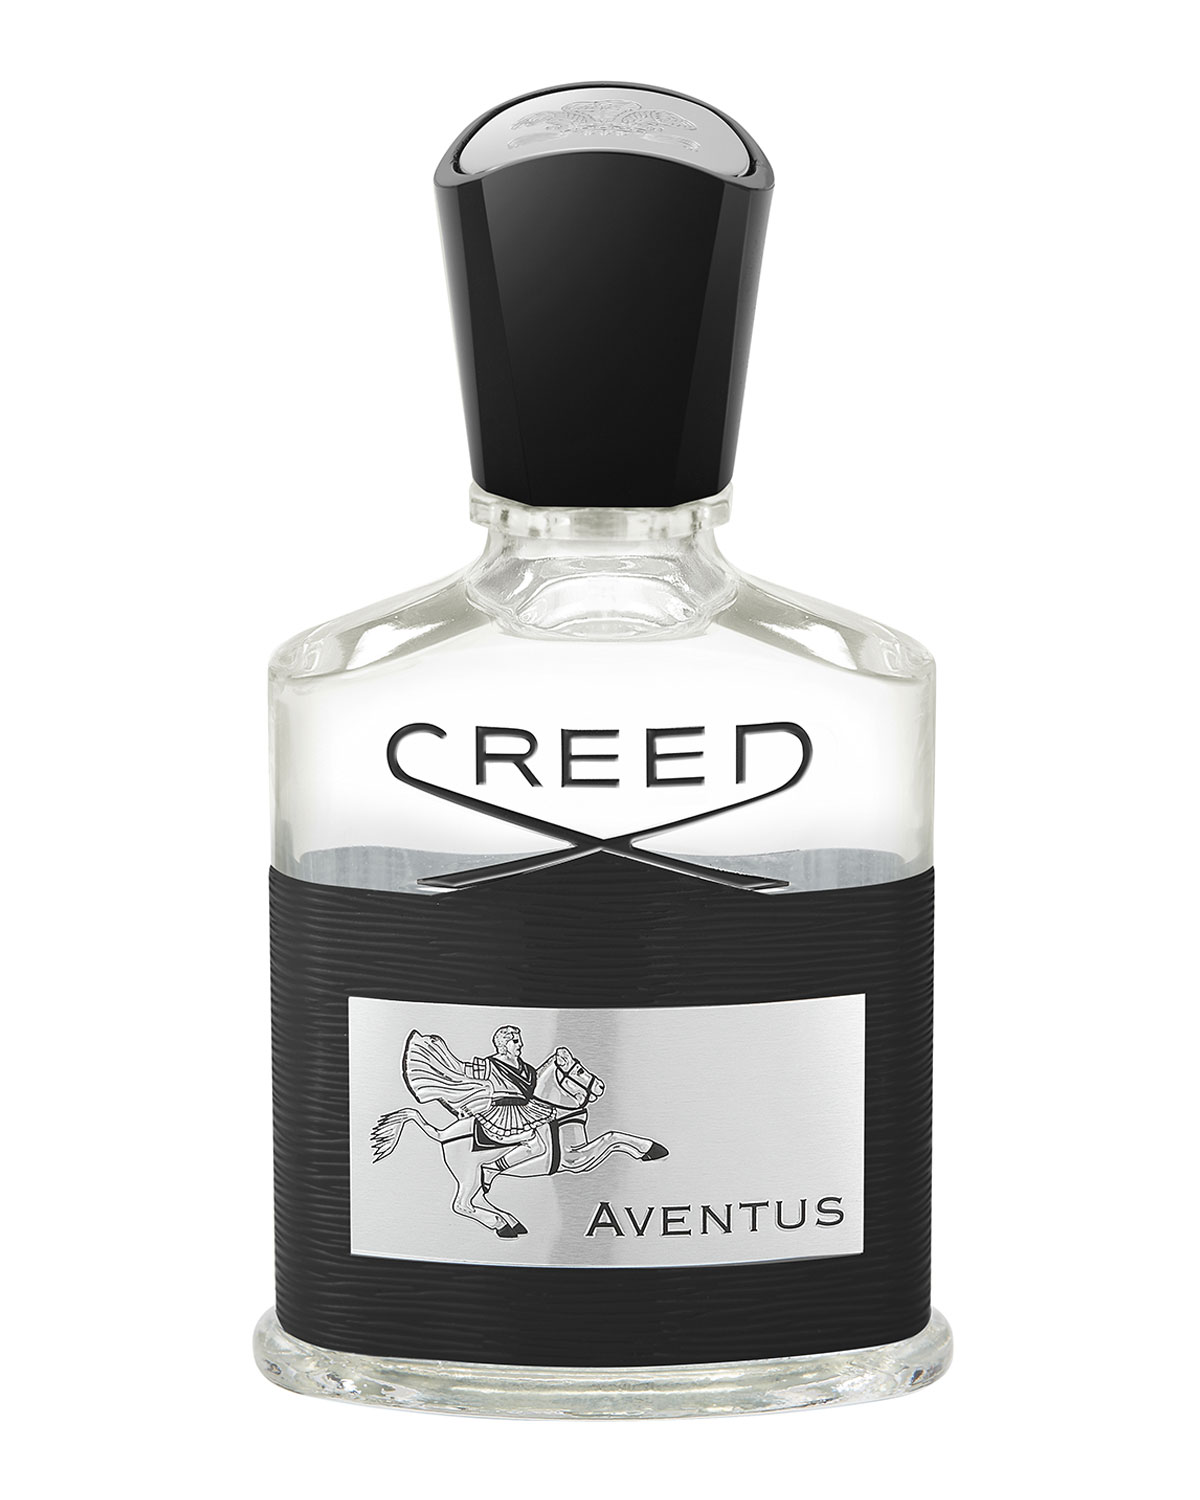 CREED 1.7 oz. Aventus